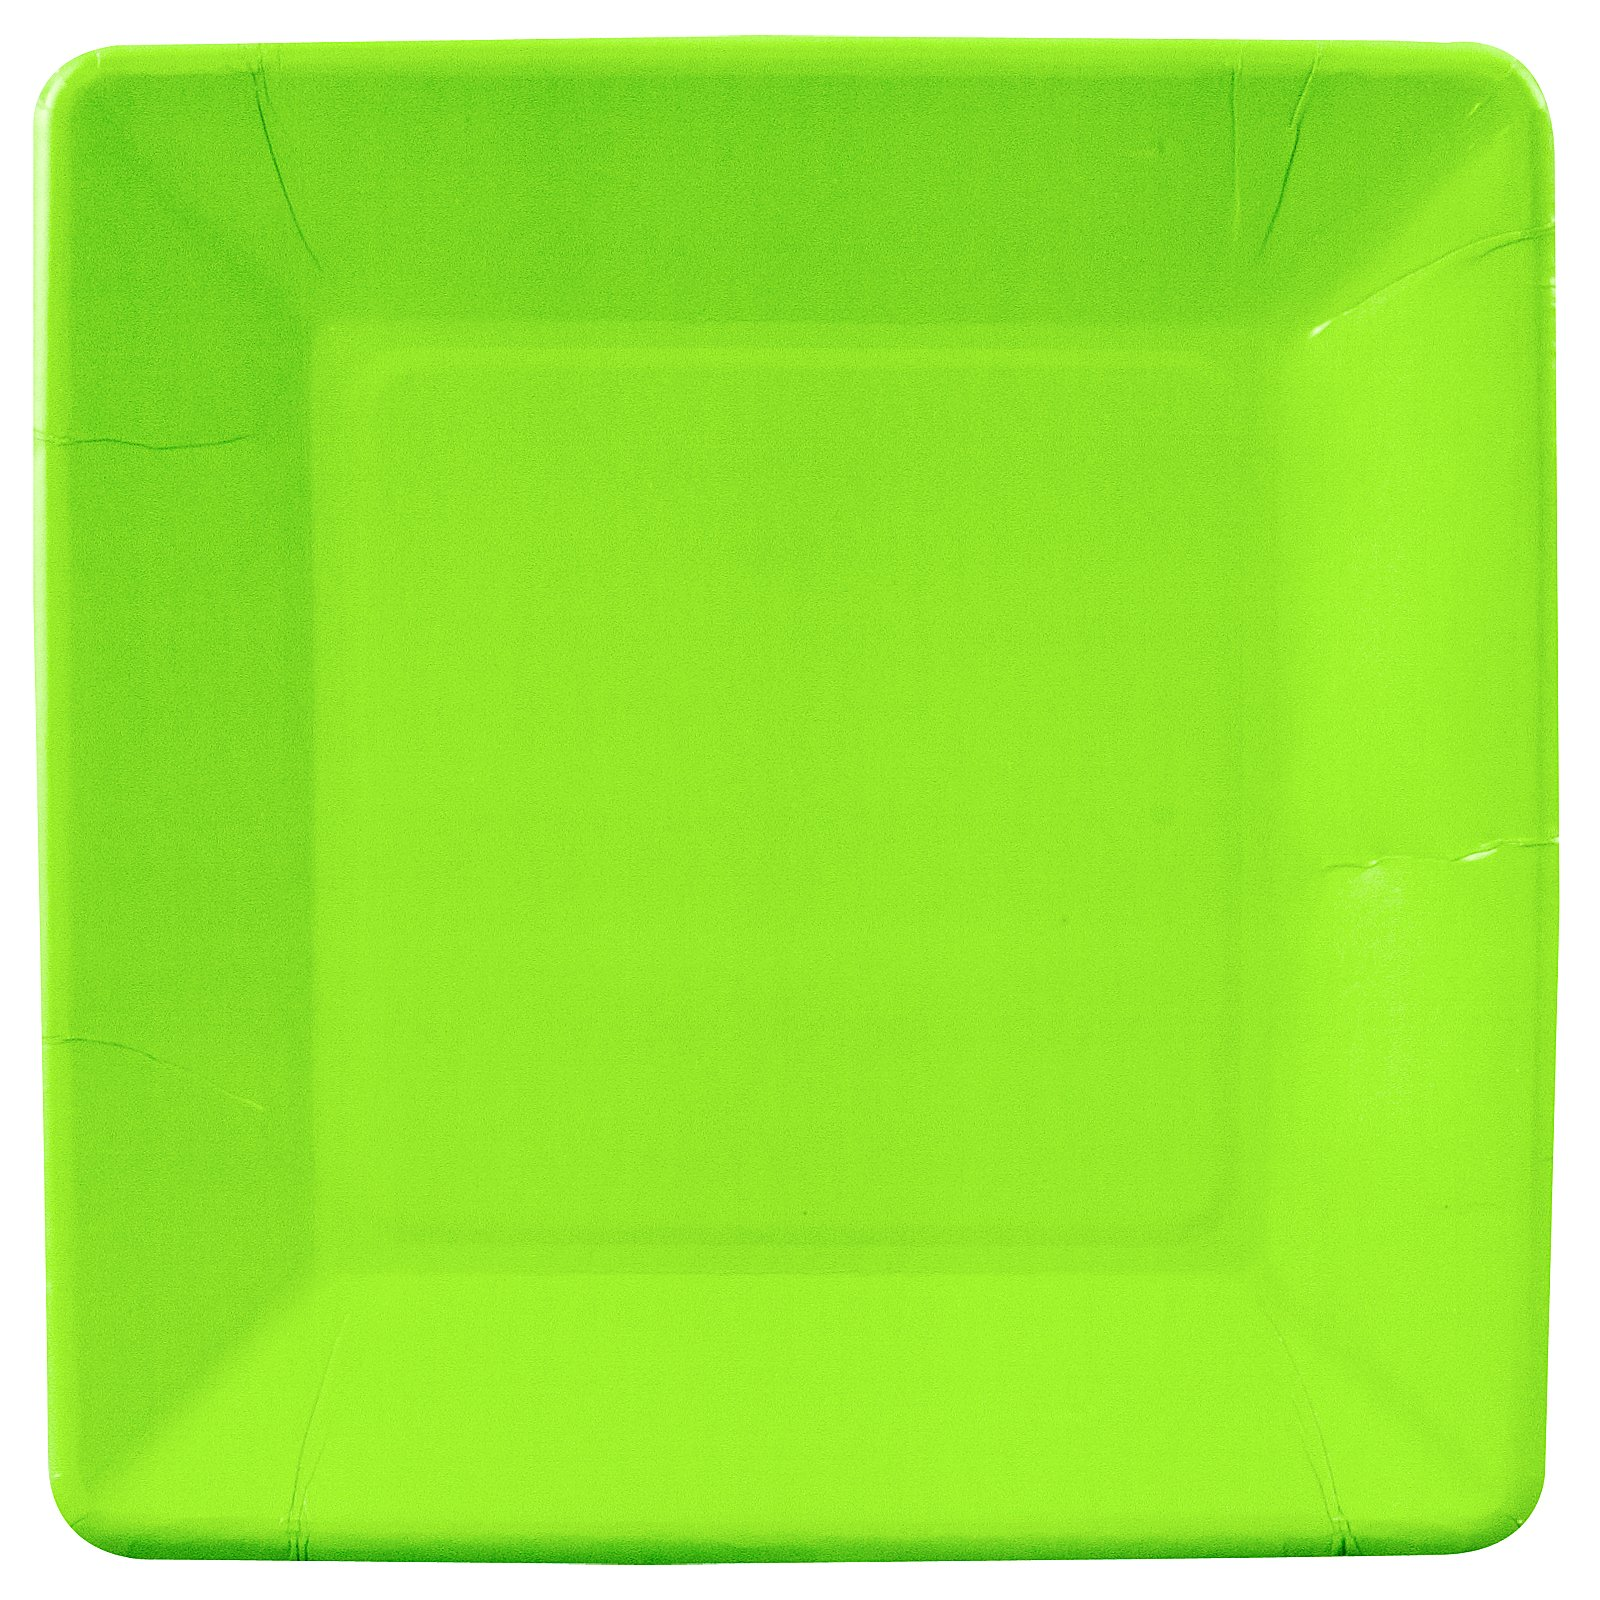 Fresh Lime (Lime Green) Square Dinner Plates (18 count)